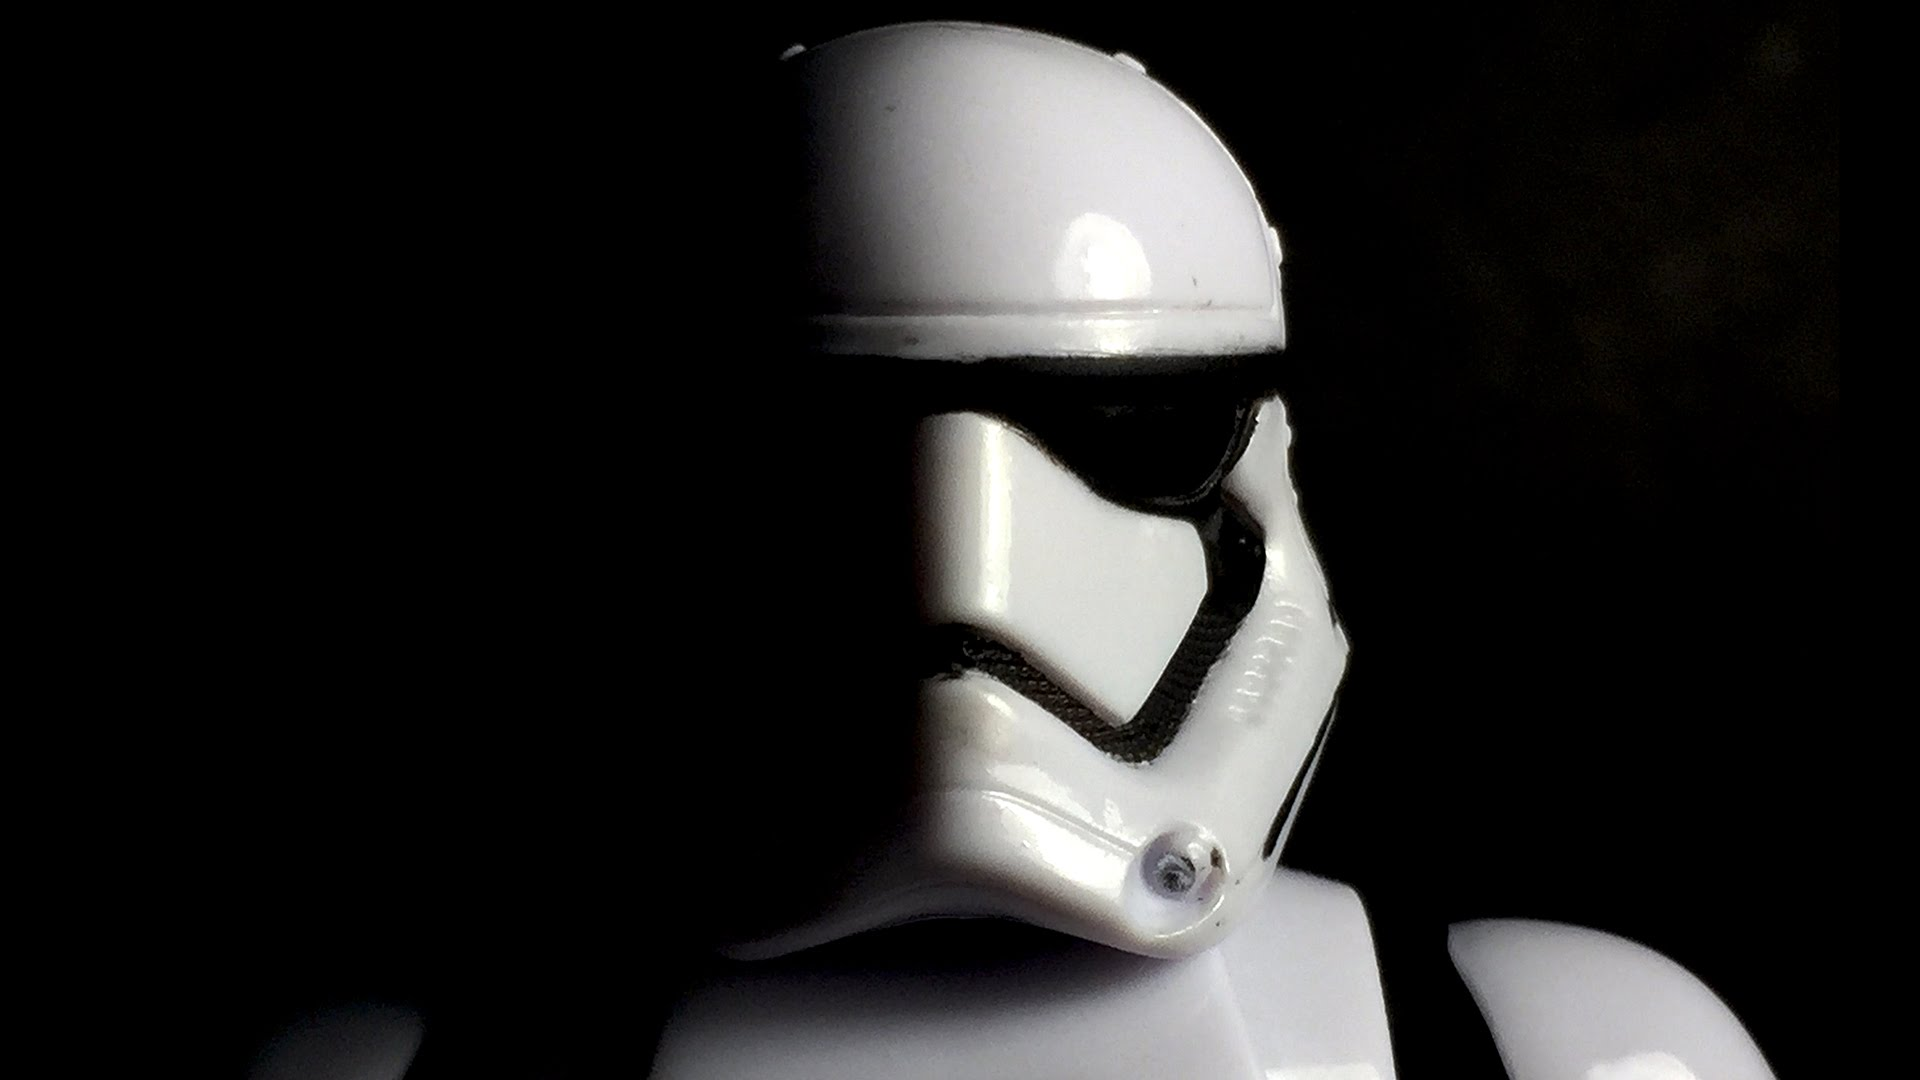 Star Wars Stormtrooper Wallpaper Posted By Christopher Tremblay